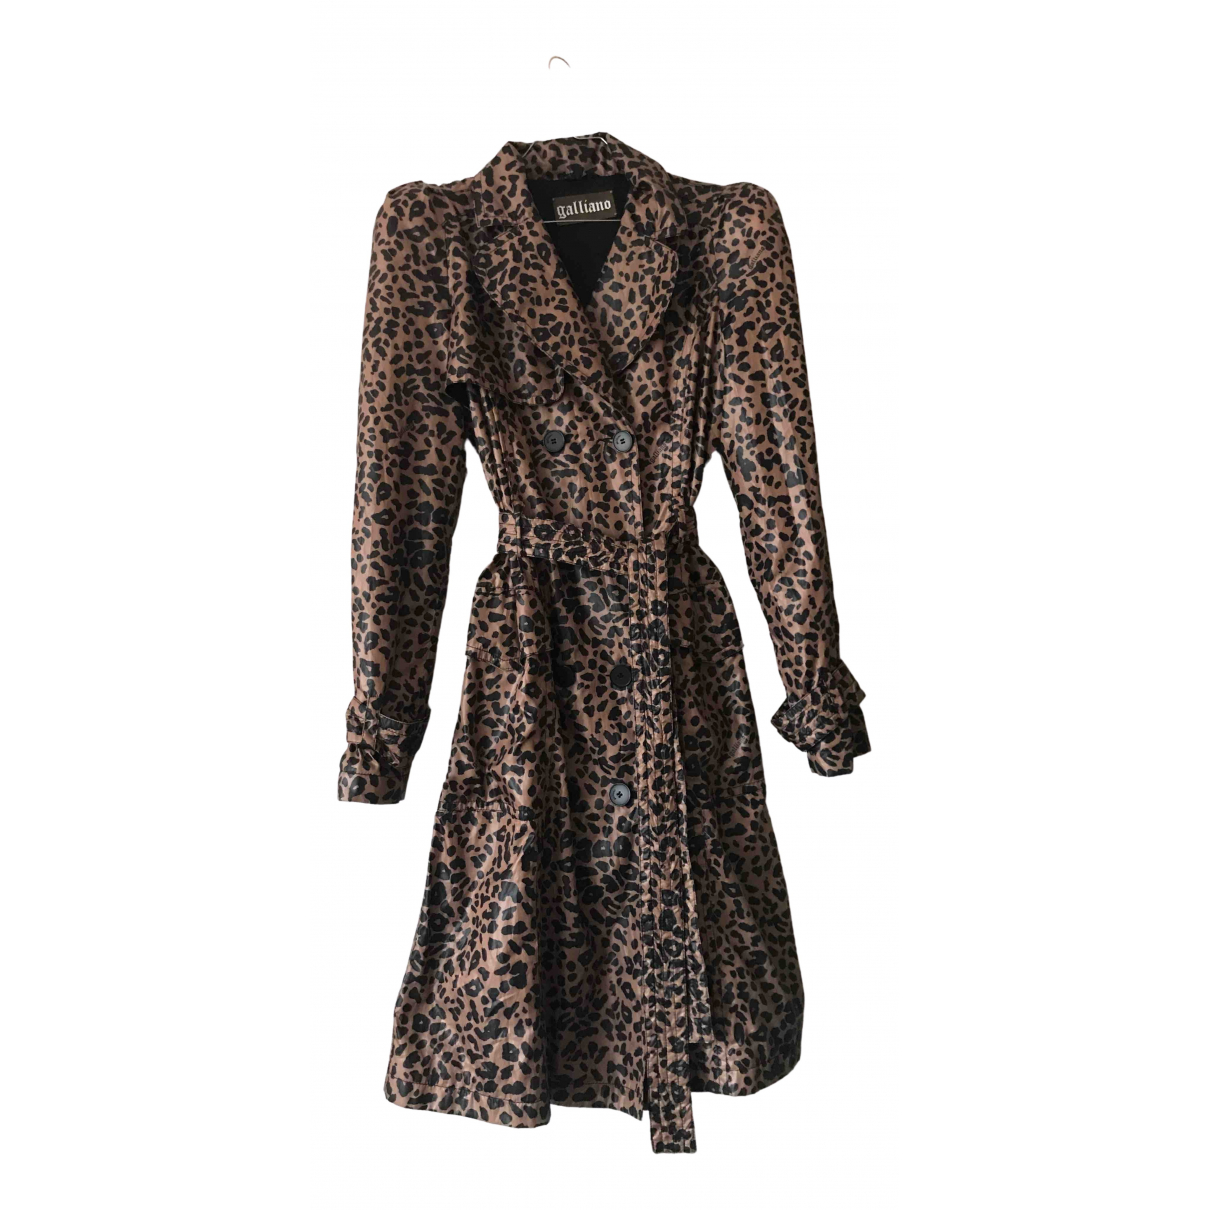 Galliano N Brown coat for Women 42 IT